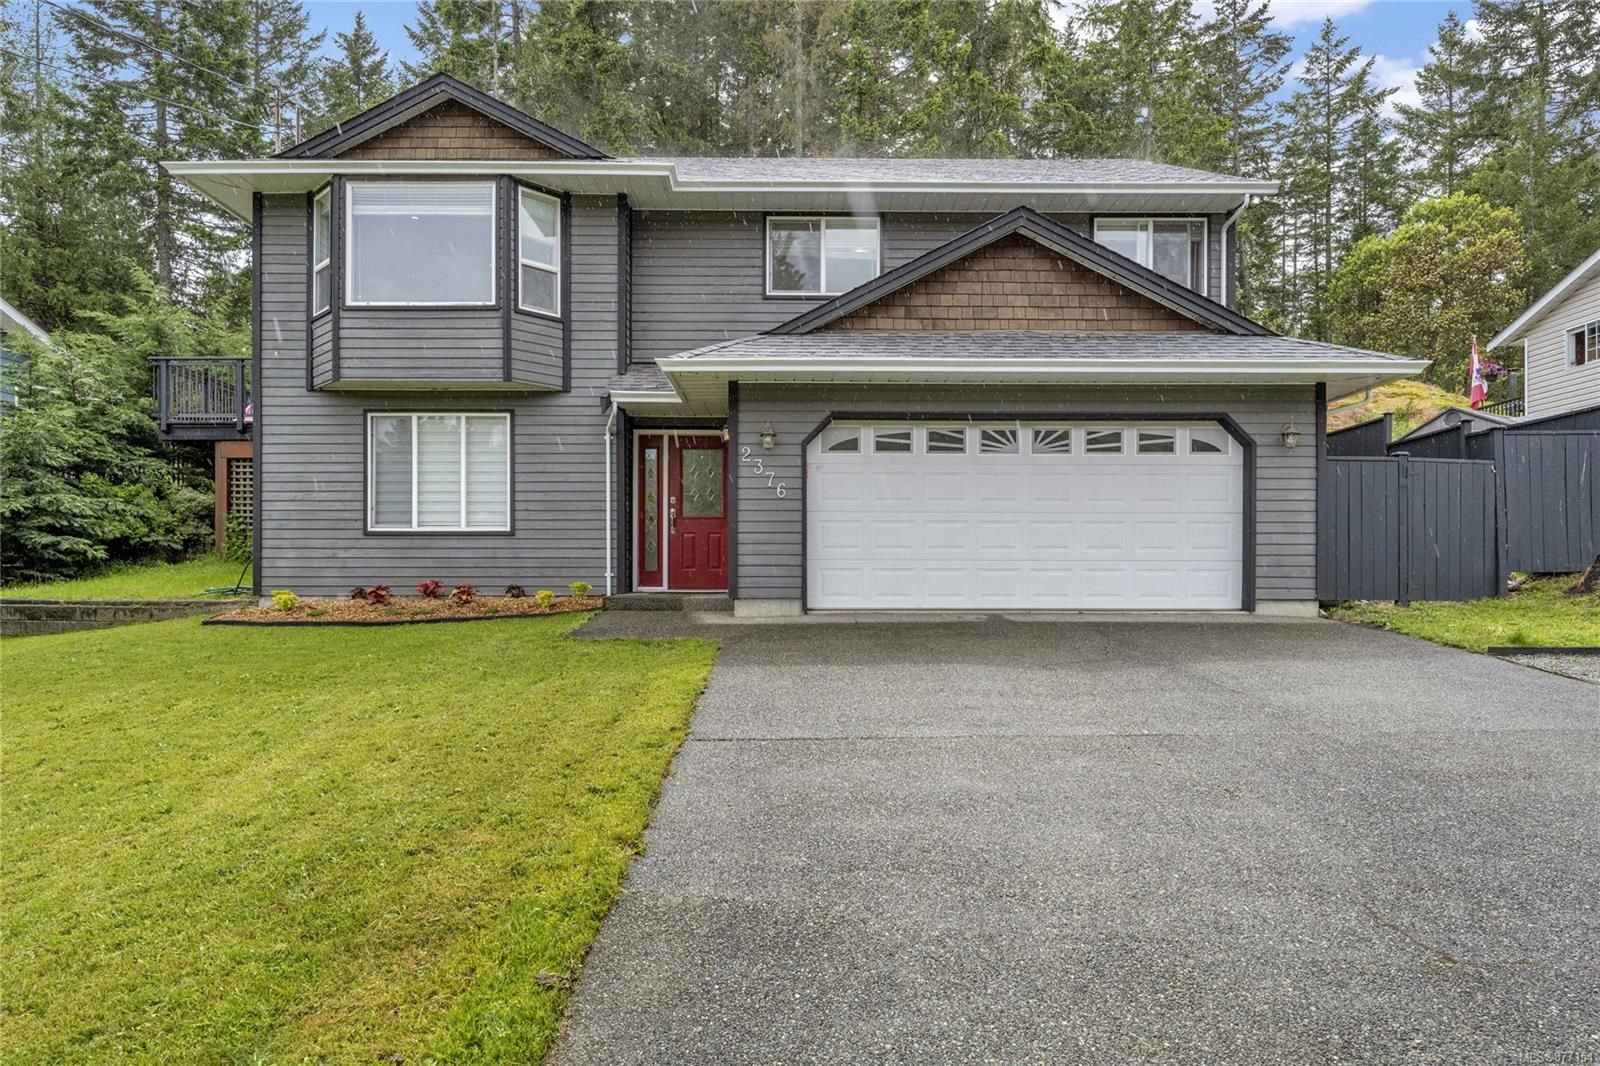 Photo 35: Photos: 2376 Terrace Rd in : ML Shawnigan House for sale (Malahat & Area)  : MLS®# 877154